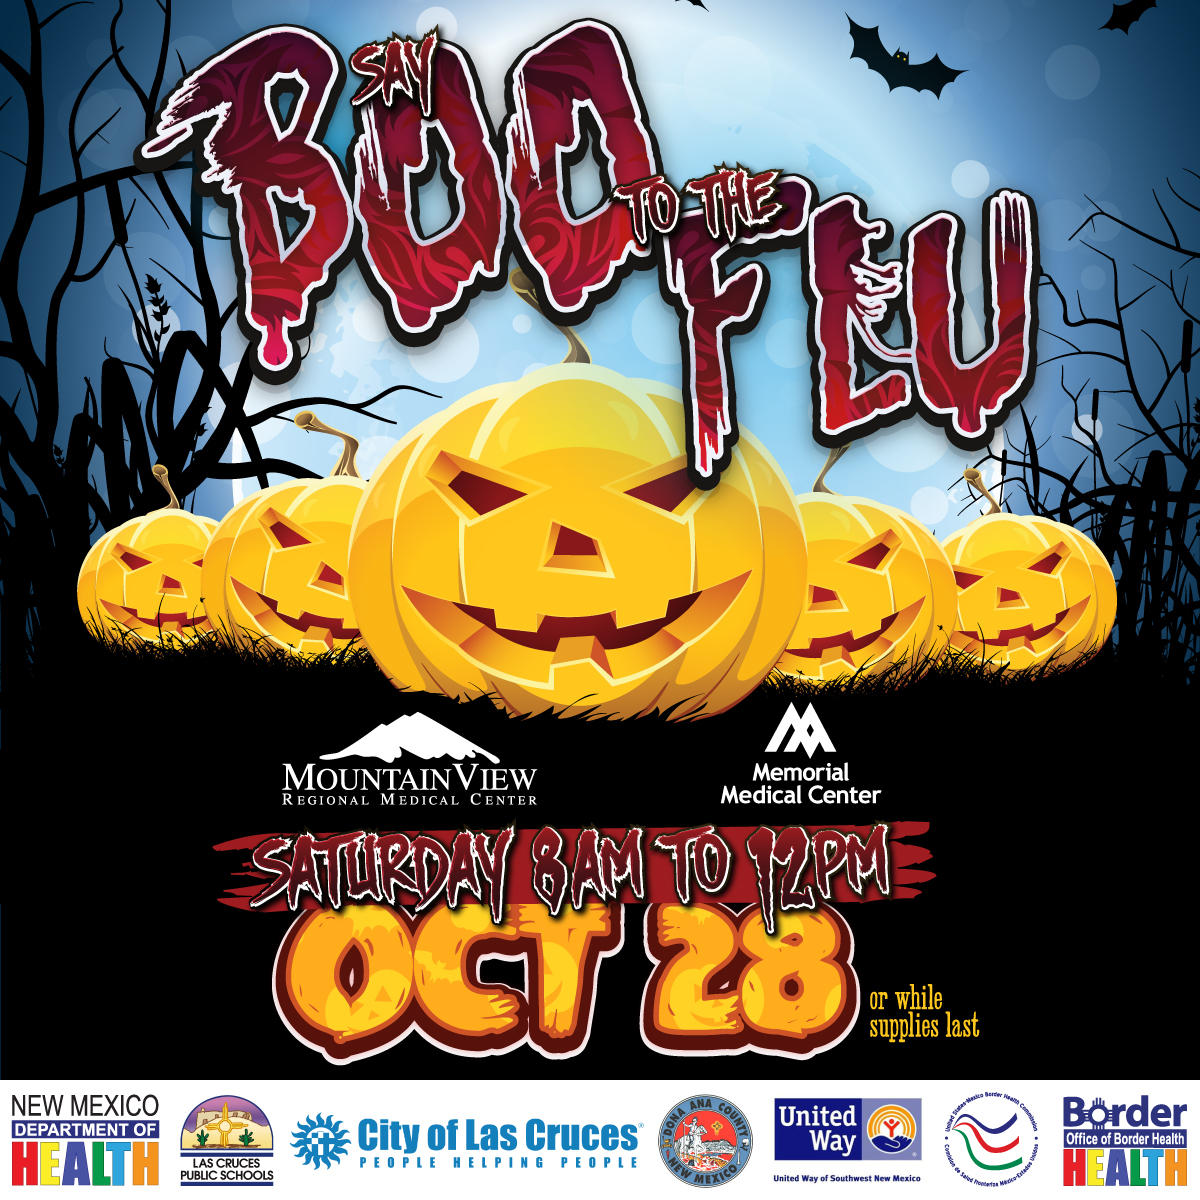 Say Boo To The Flu No Cost Flu Vaccinations Offered In Las Cruces